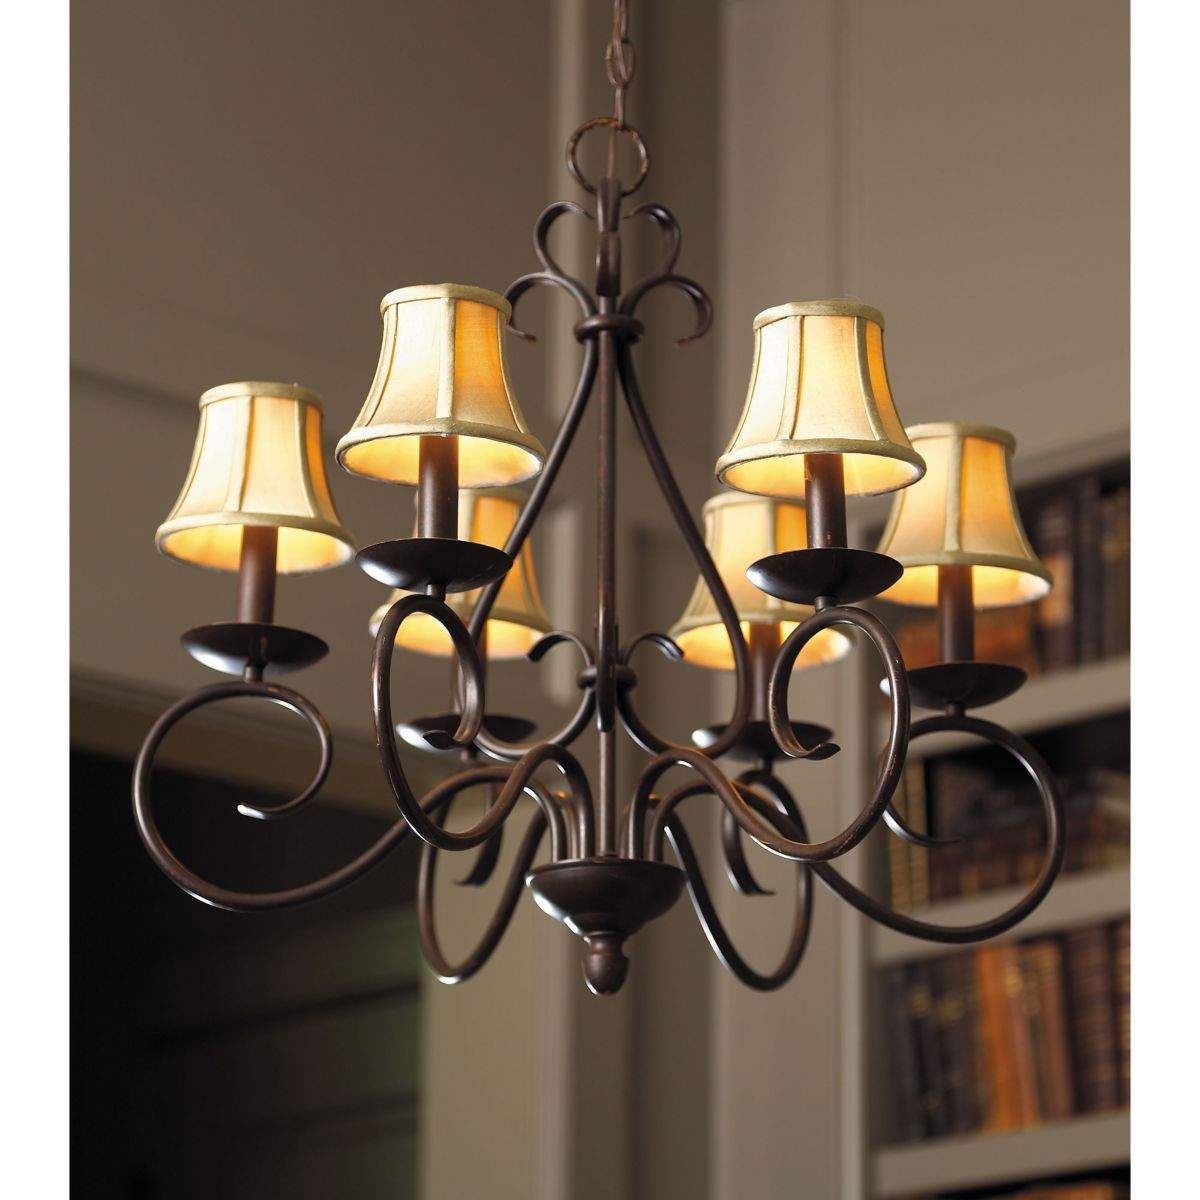 Talia 6 Arm Chandelier Kitchen Table Lighting Dining Room Light Fixtures Chandelier Shades